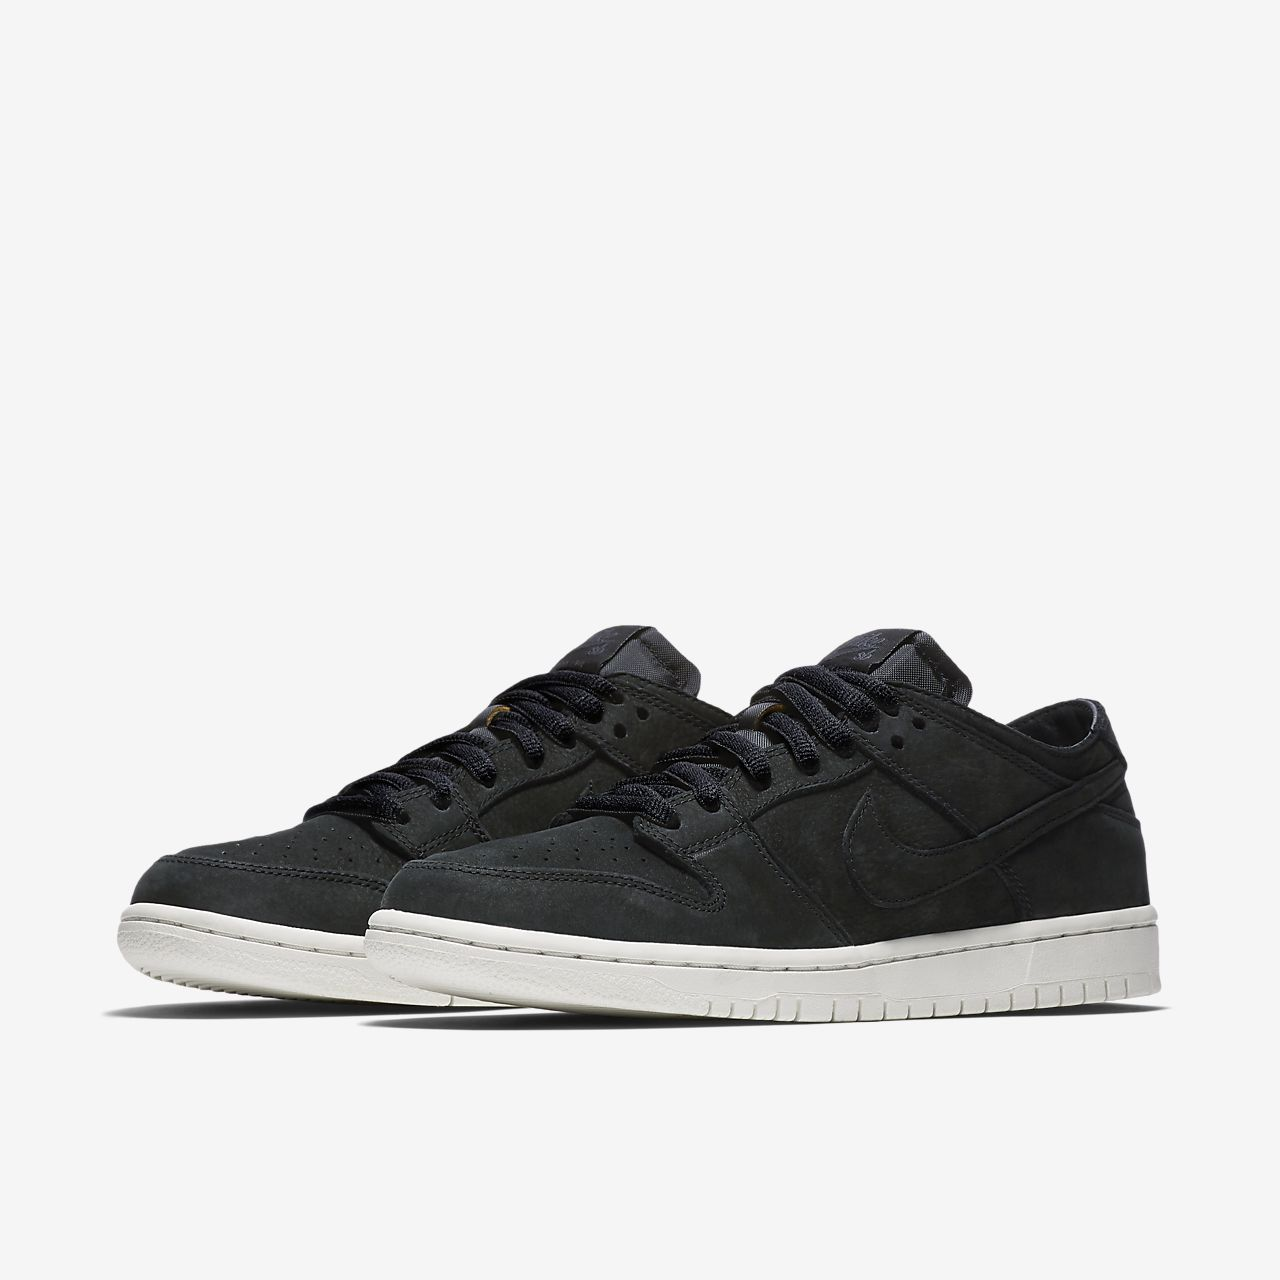 Nike Sb Zoom Dunk Low Pro Deconstructed Black Model Aviation